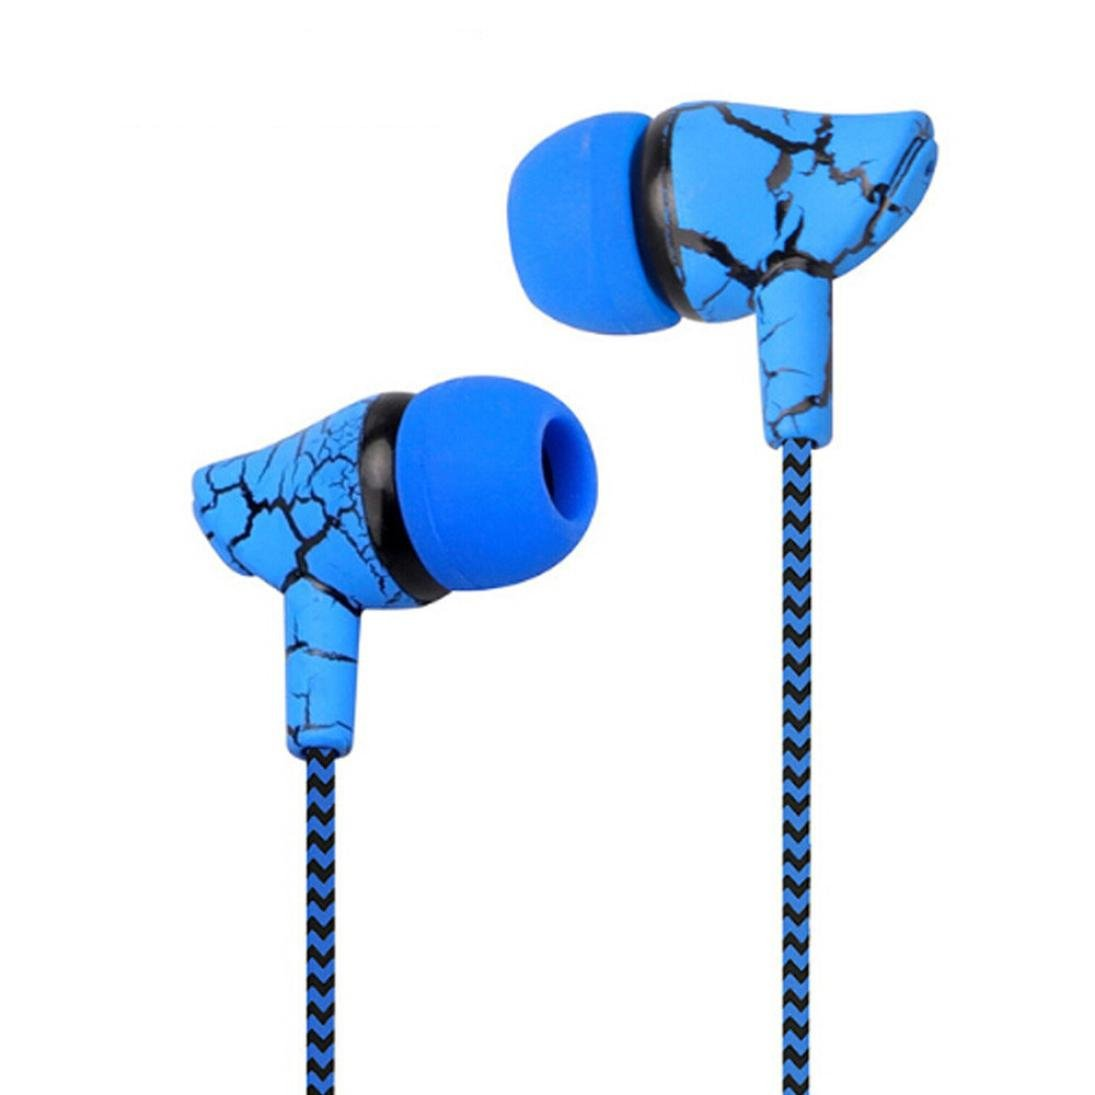 SUKEQ In Ear Earphones, 3.5mm Wired Stereo Crack Headphones Noise Isolating Sport Earbuds Headvy Duty Headset with Mic For MP3 MP4 (blue) by SUKEQ (Image #1)